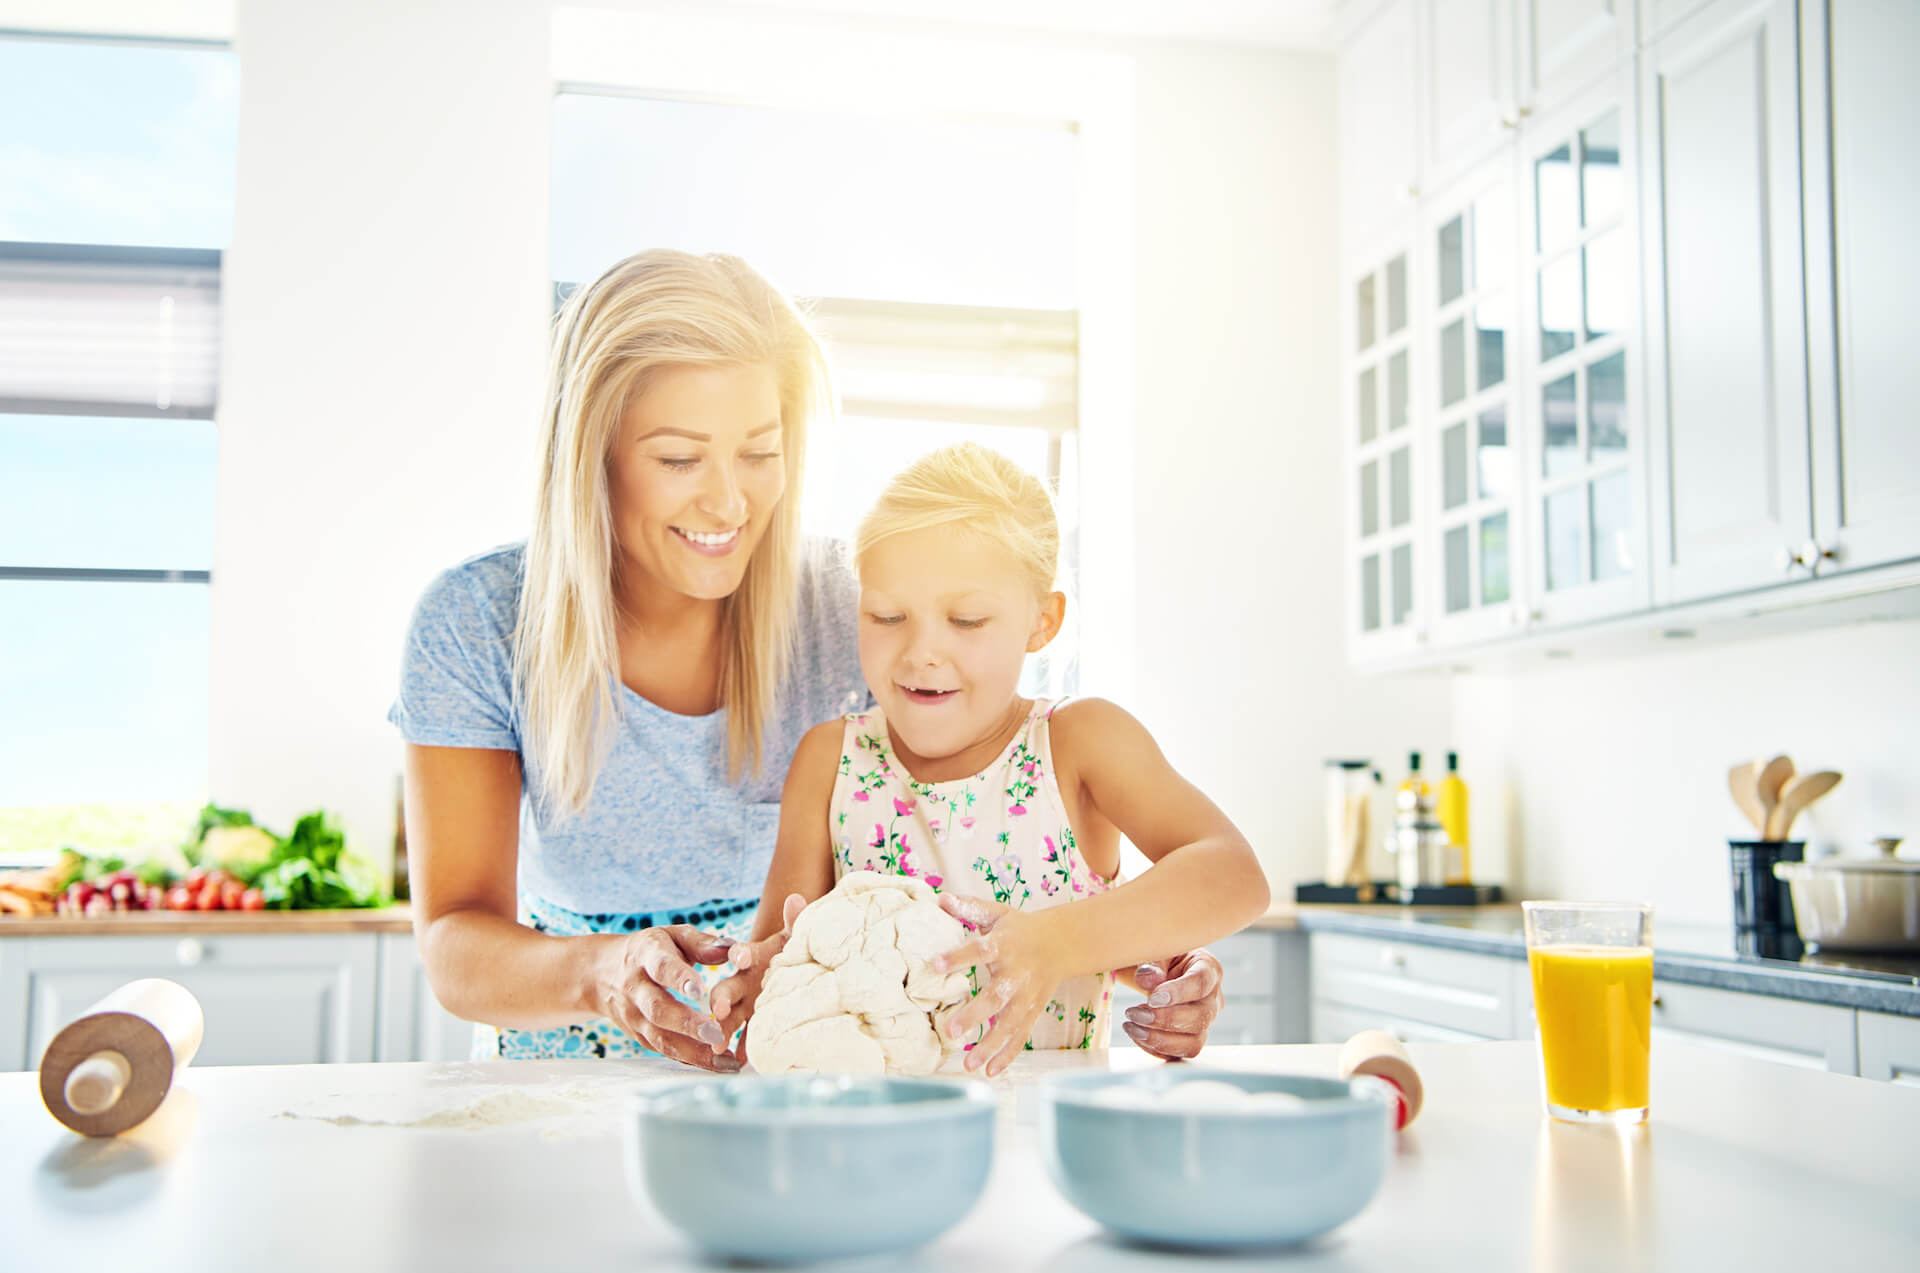 mother and daughter in kitchen updwell homes utah home builder